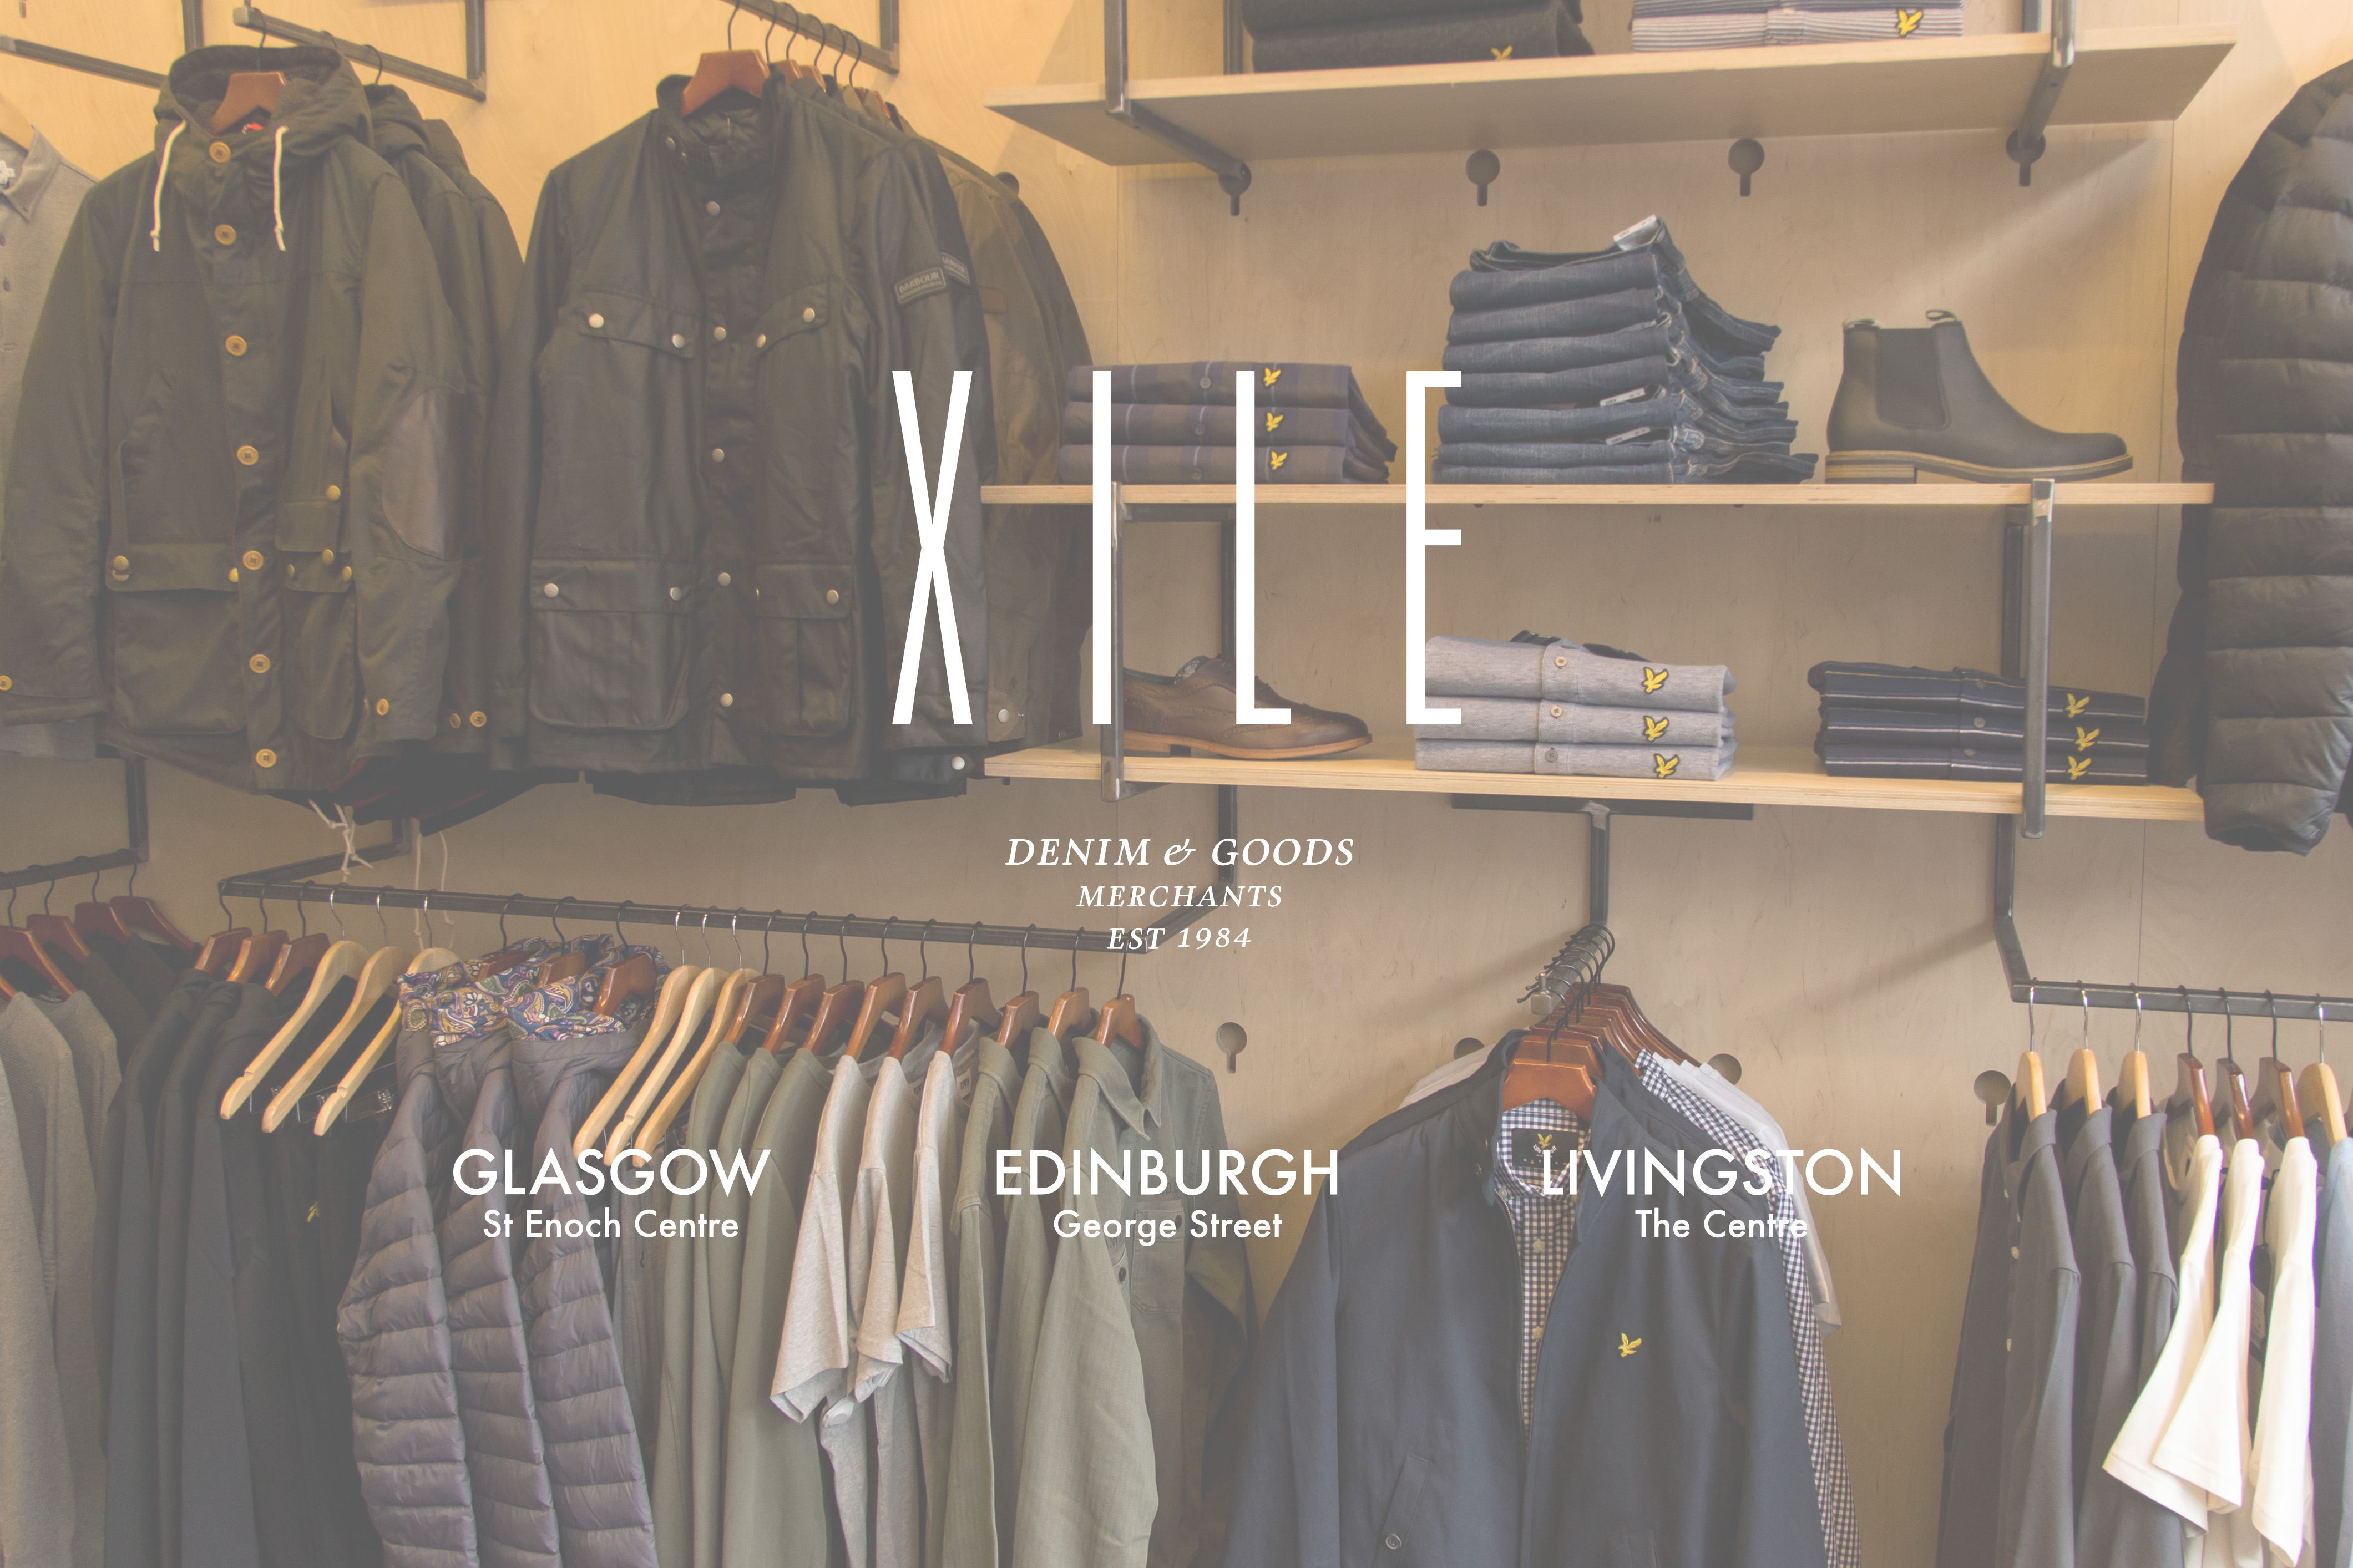 One Of Scotlands Largest Menswear Retailers Is Looking For An Assistant Manager To Join Our Store In The Heart Livingstons Centre